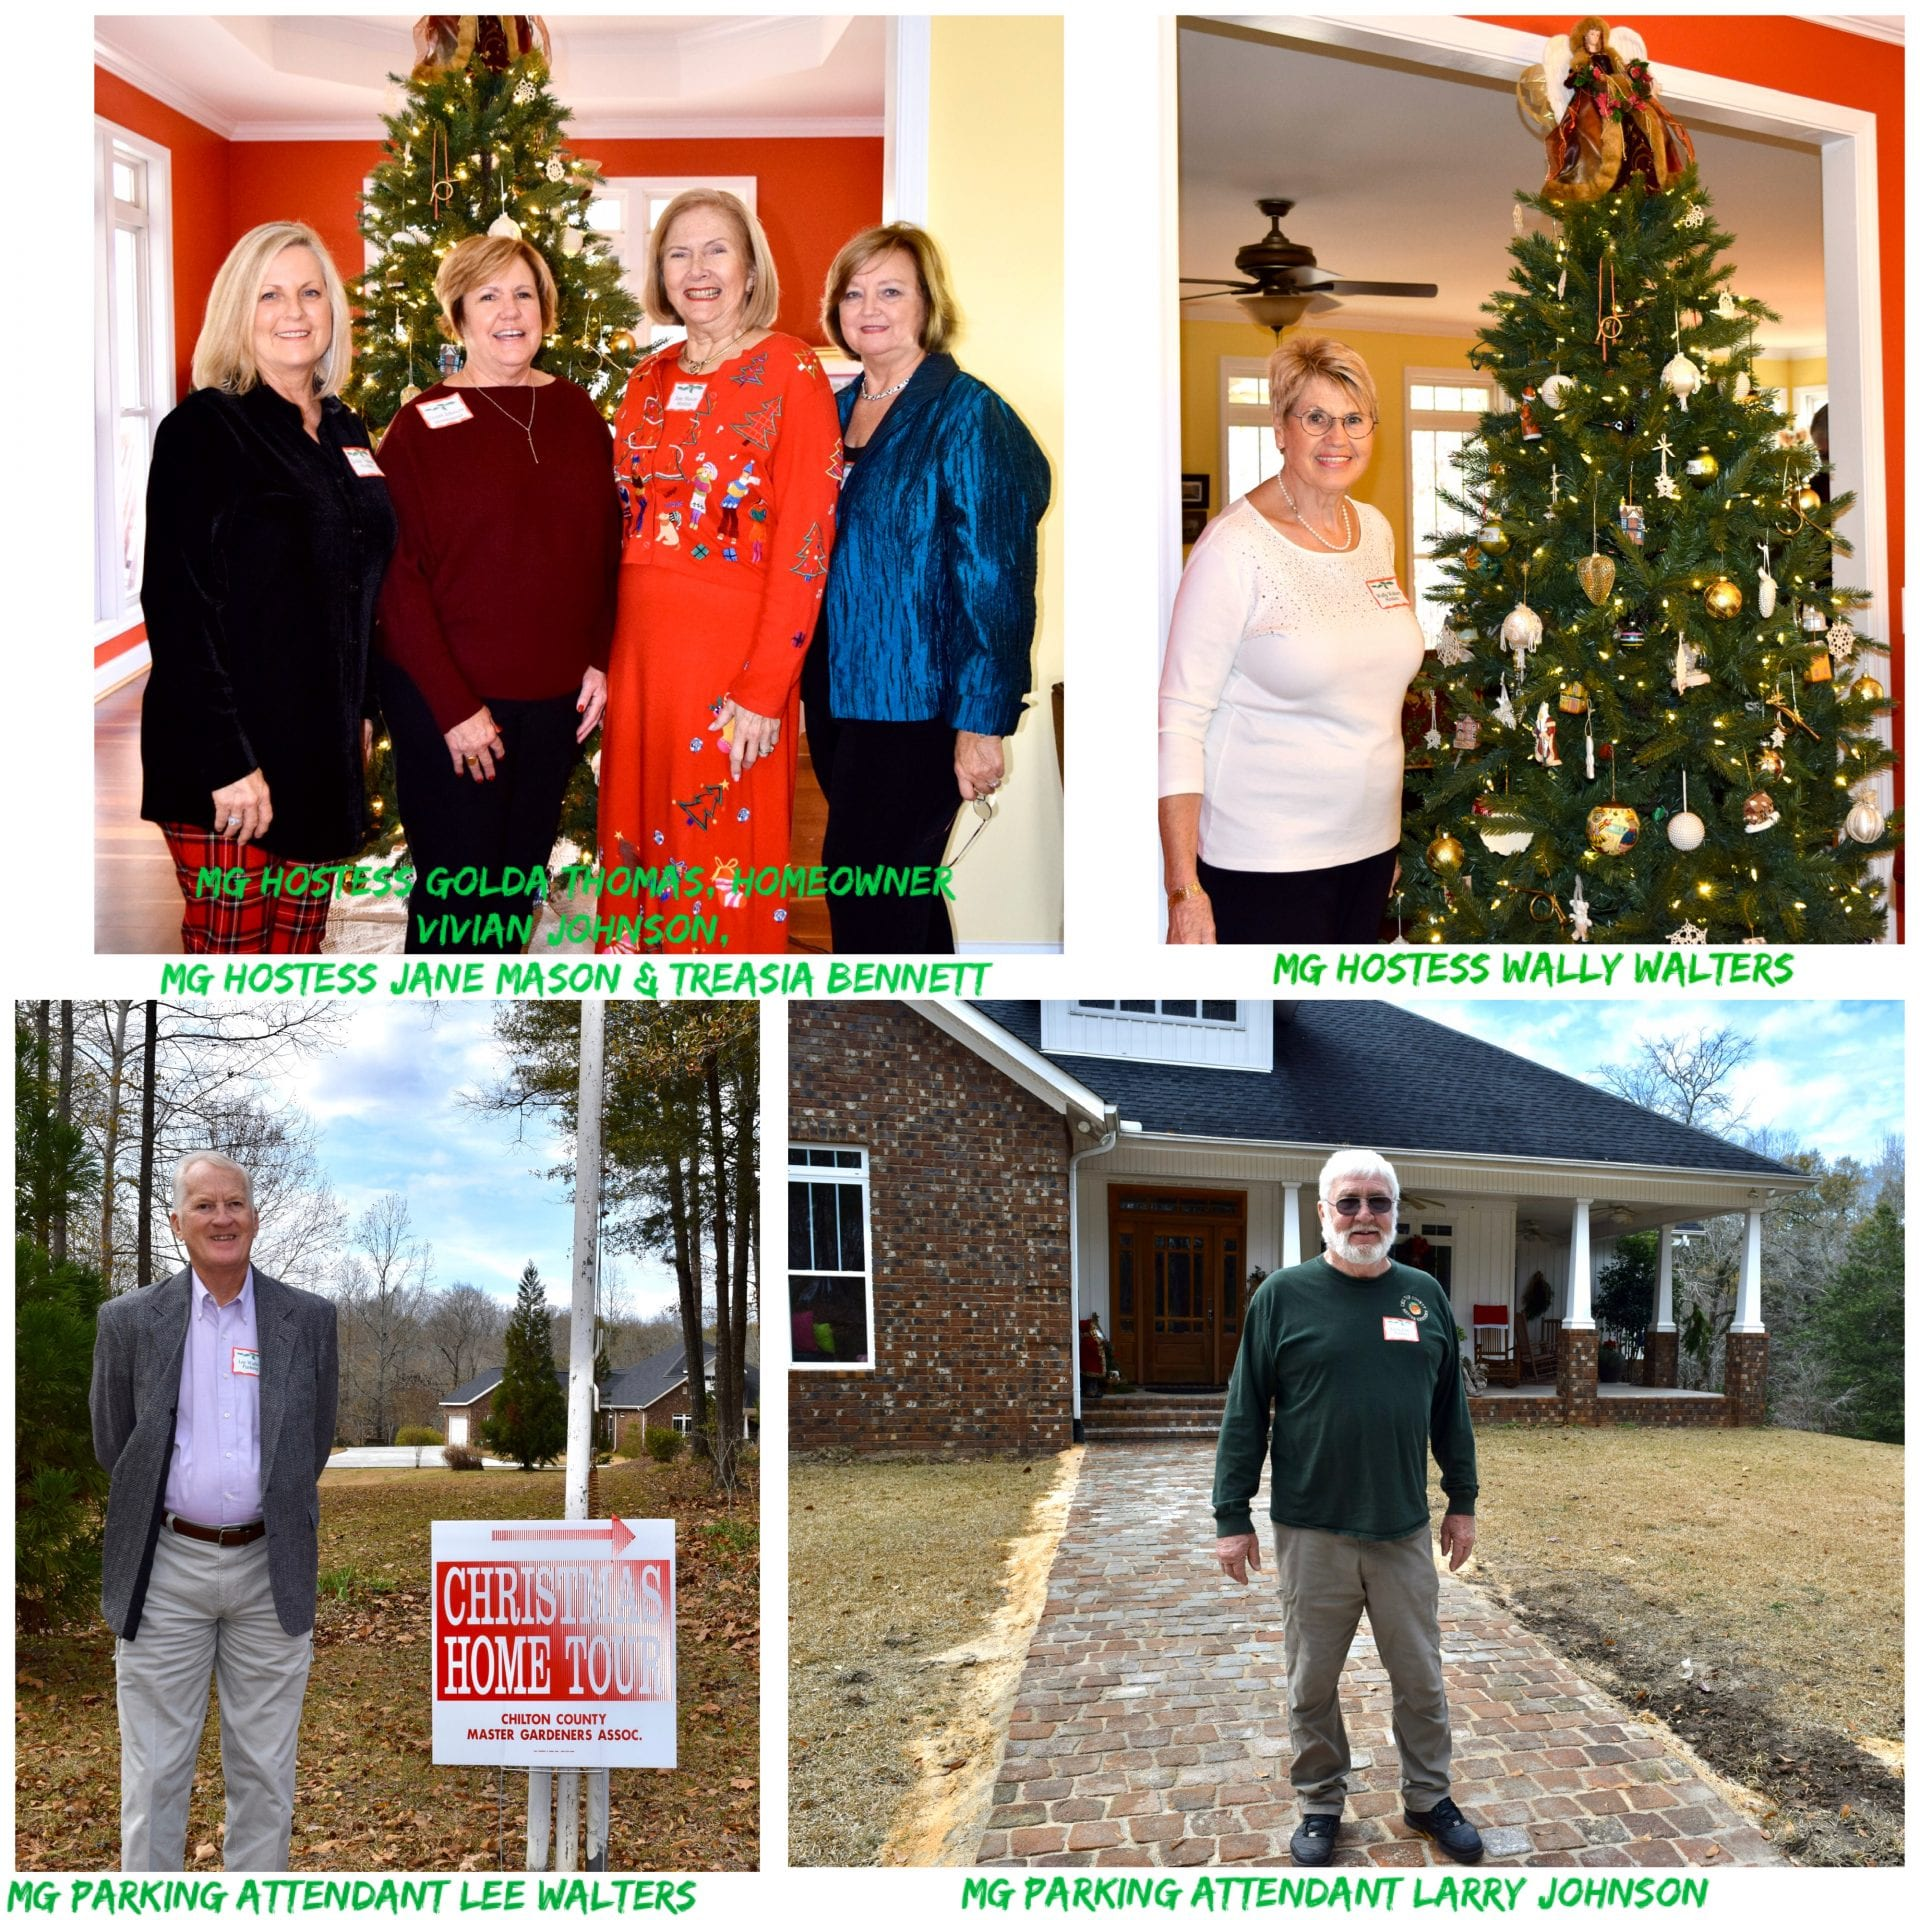 Hostesses and parking attendants at Johnson Home 2019 Christmas Home Tour